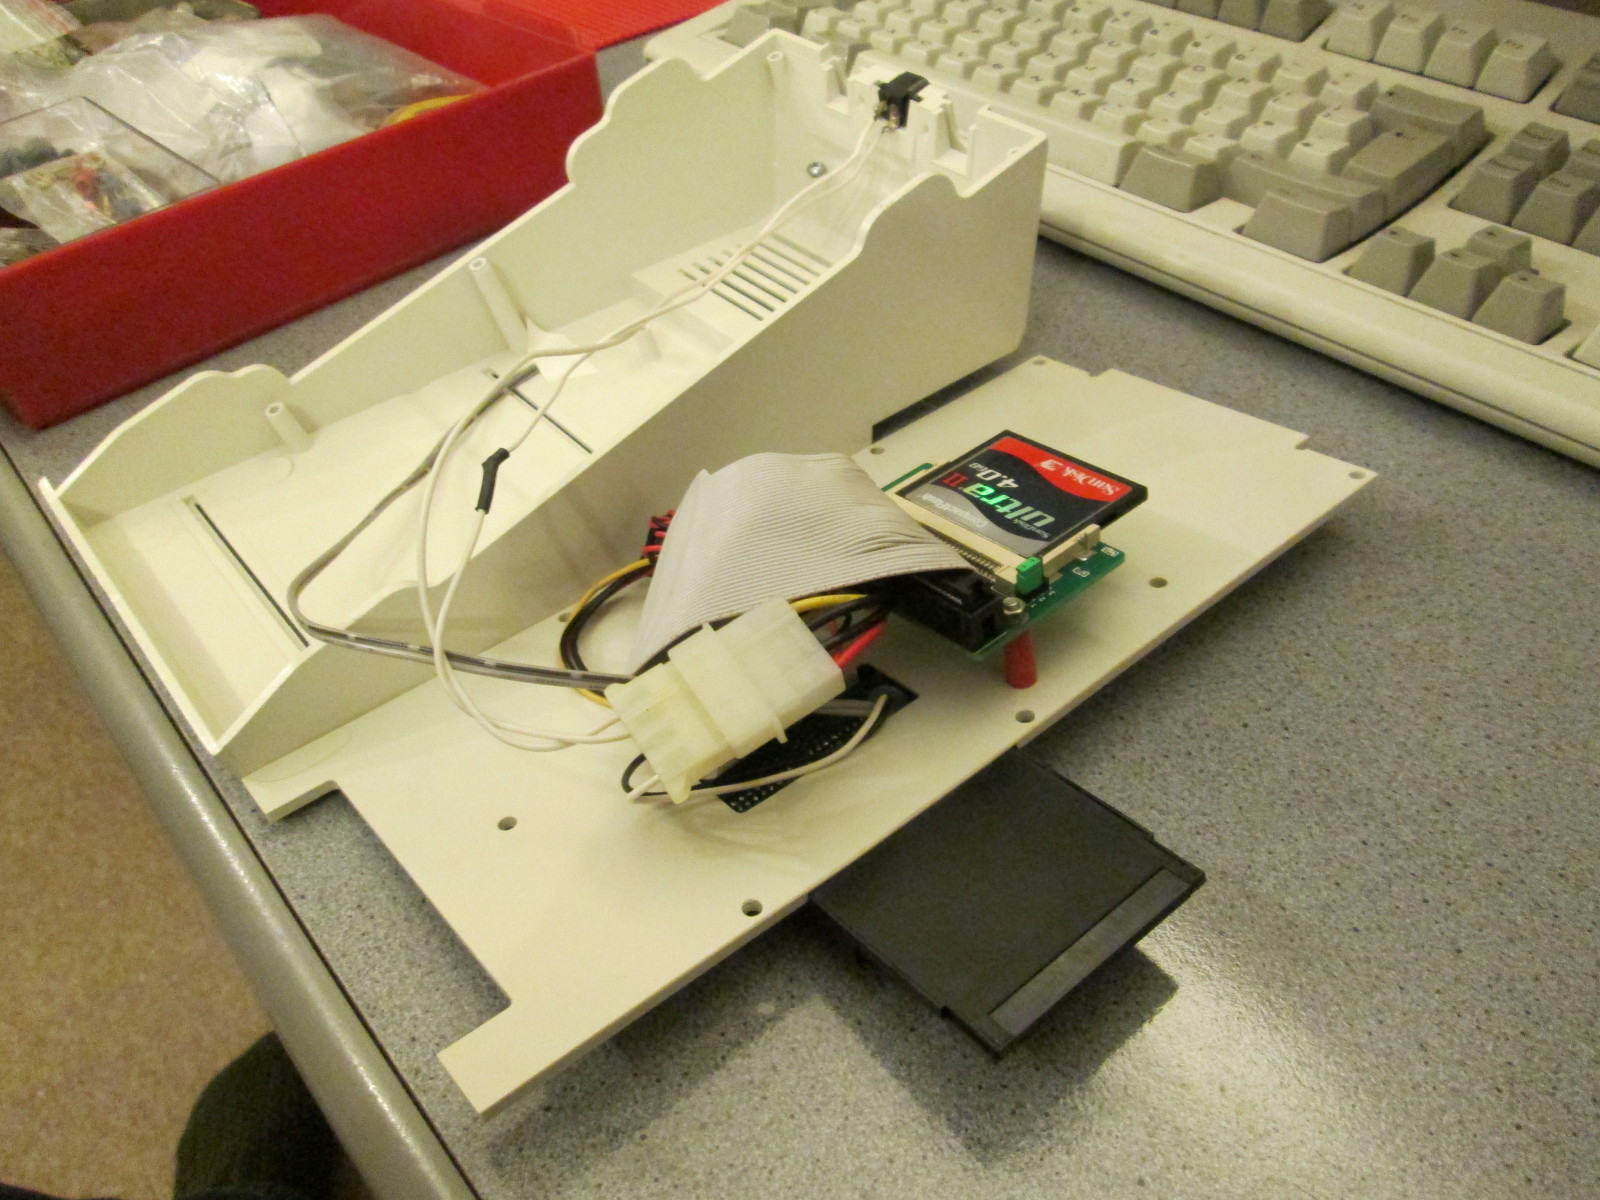 Fitting a CF card to an Amiga 1200